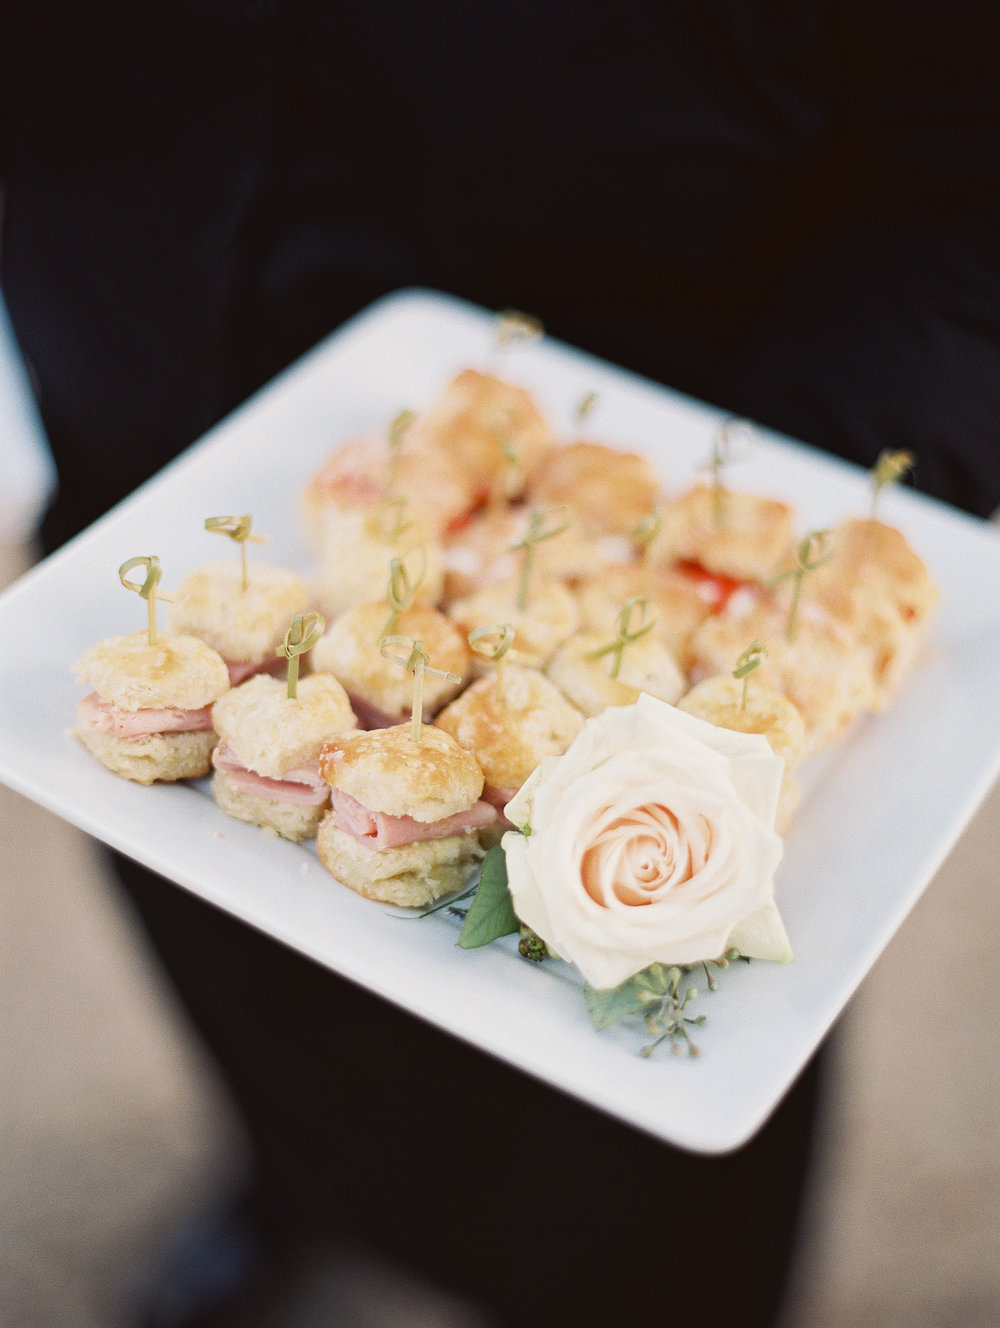 Ham biscuits by Cru Catering at Boone Hall Plantation